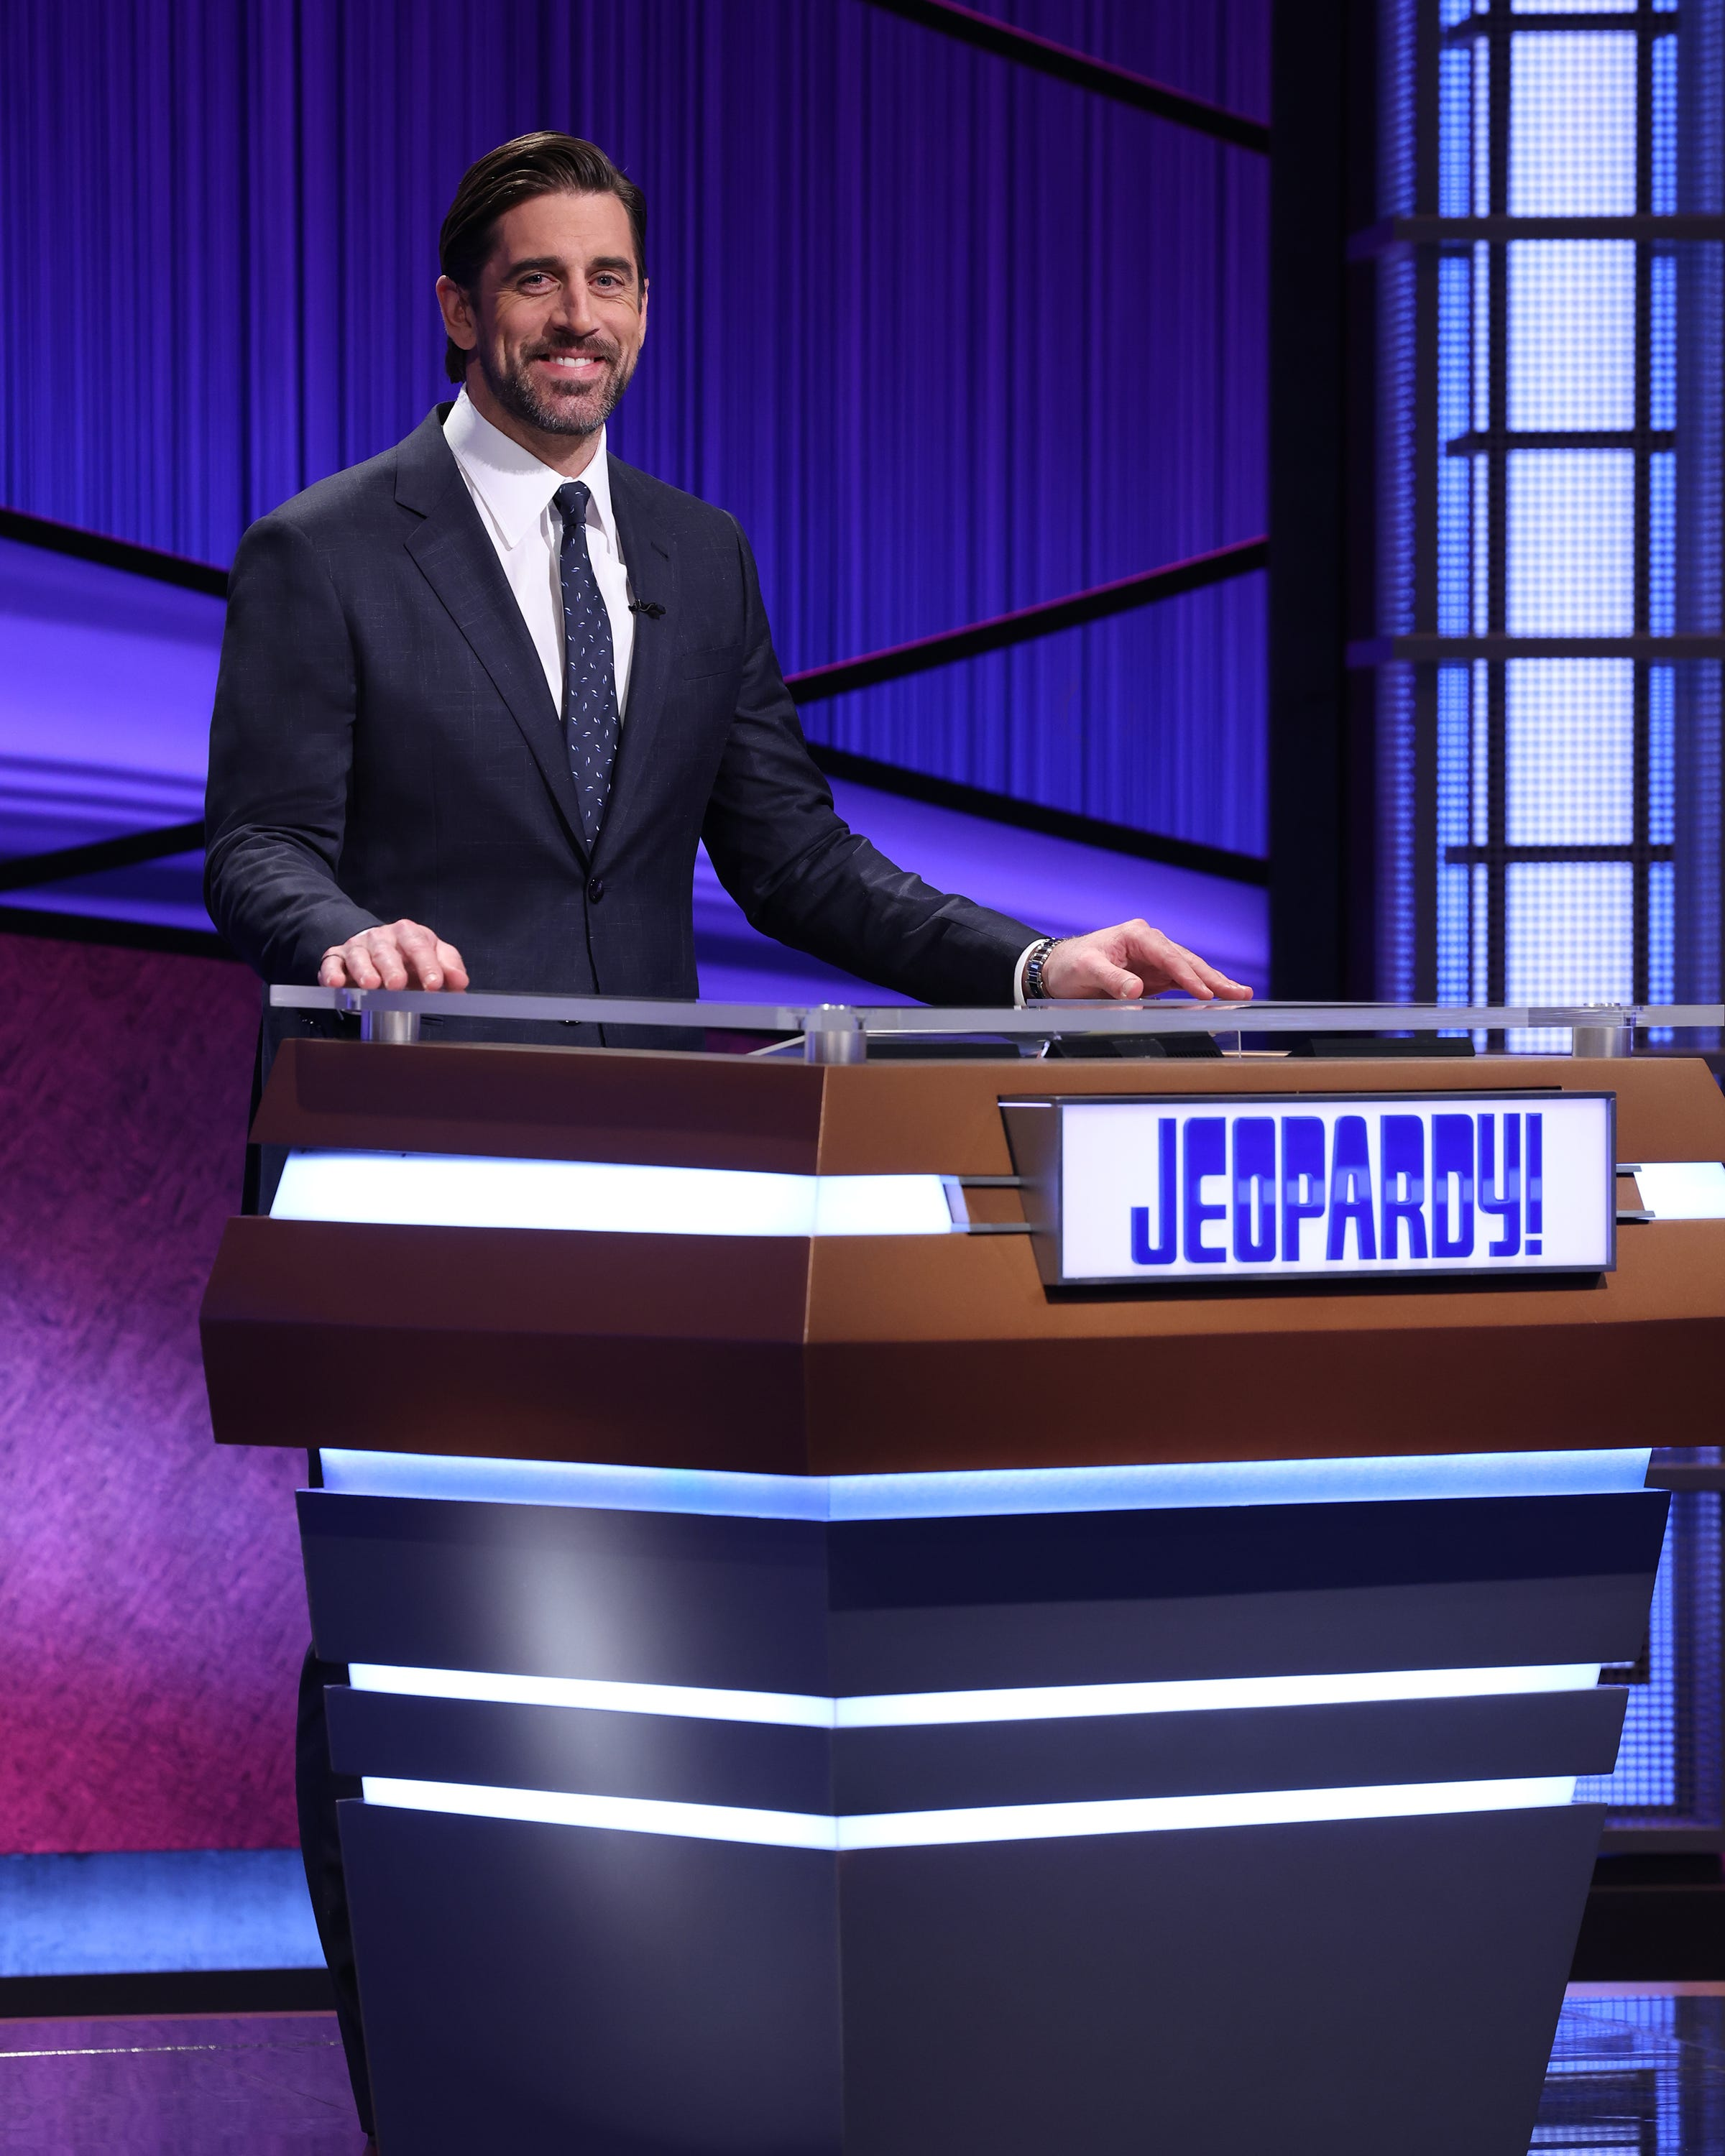 Aaron Rodgers on Jeopardy faces field goal question, aces hosting